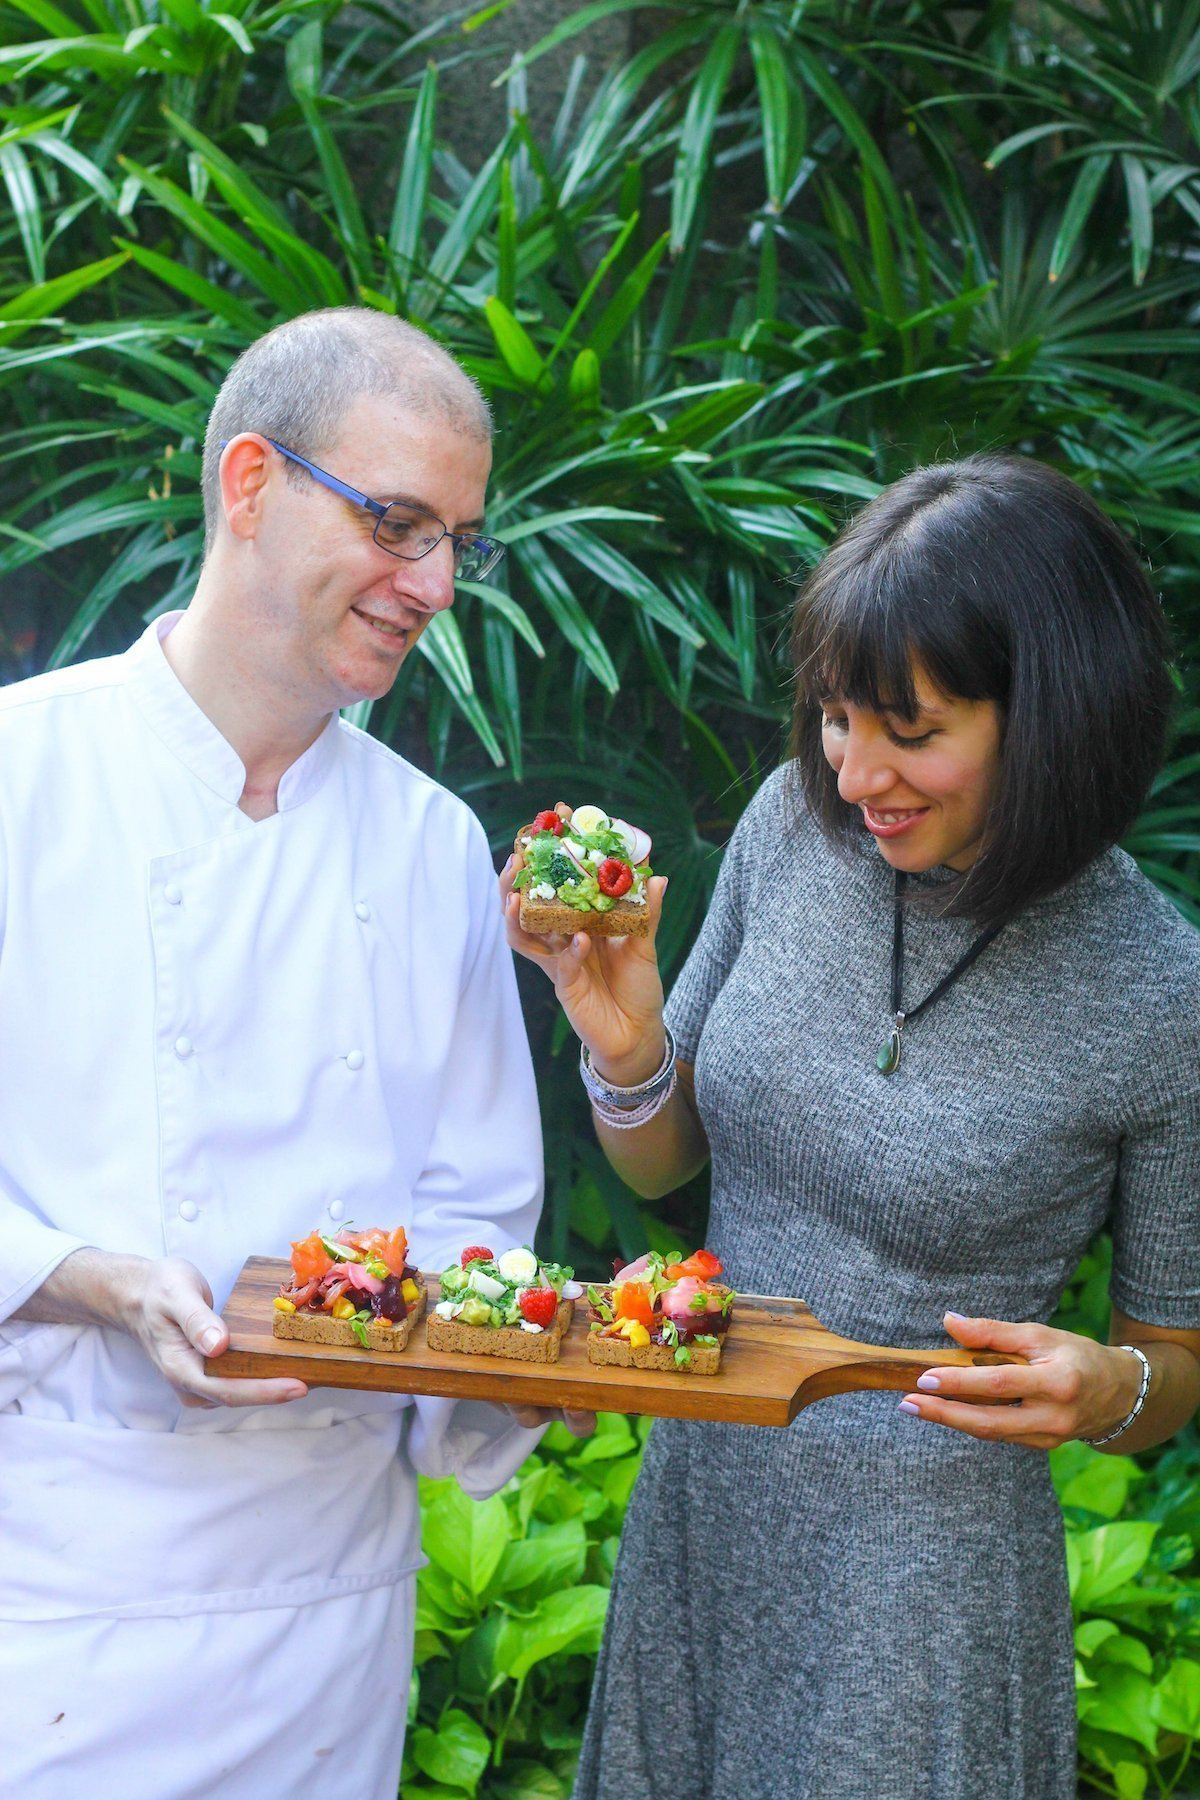 Ambra Torelli and Chef Rolando Manesco